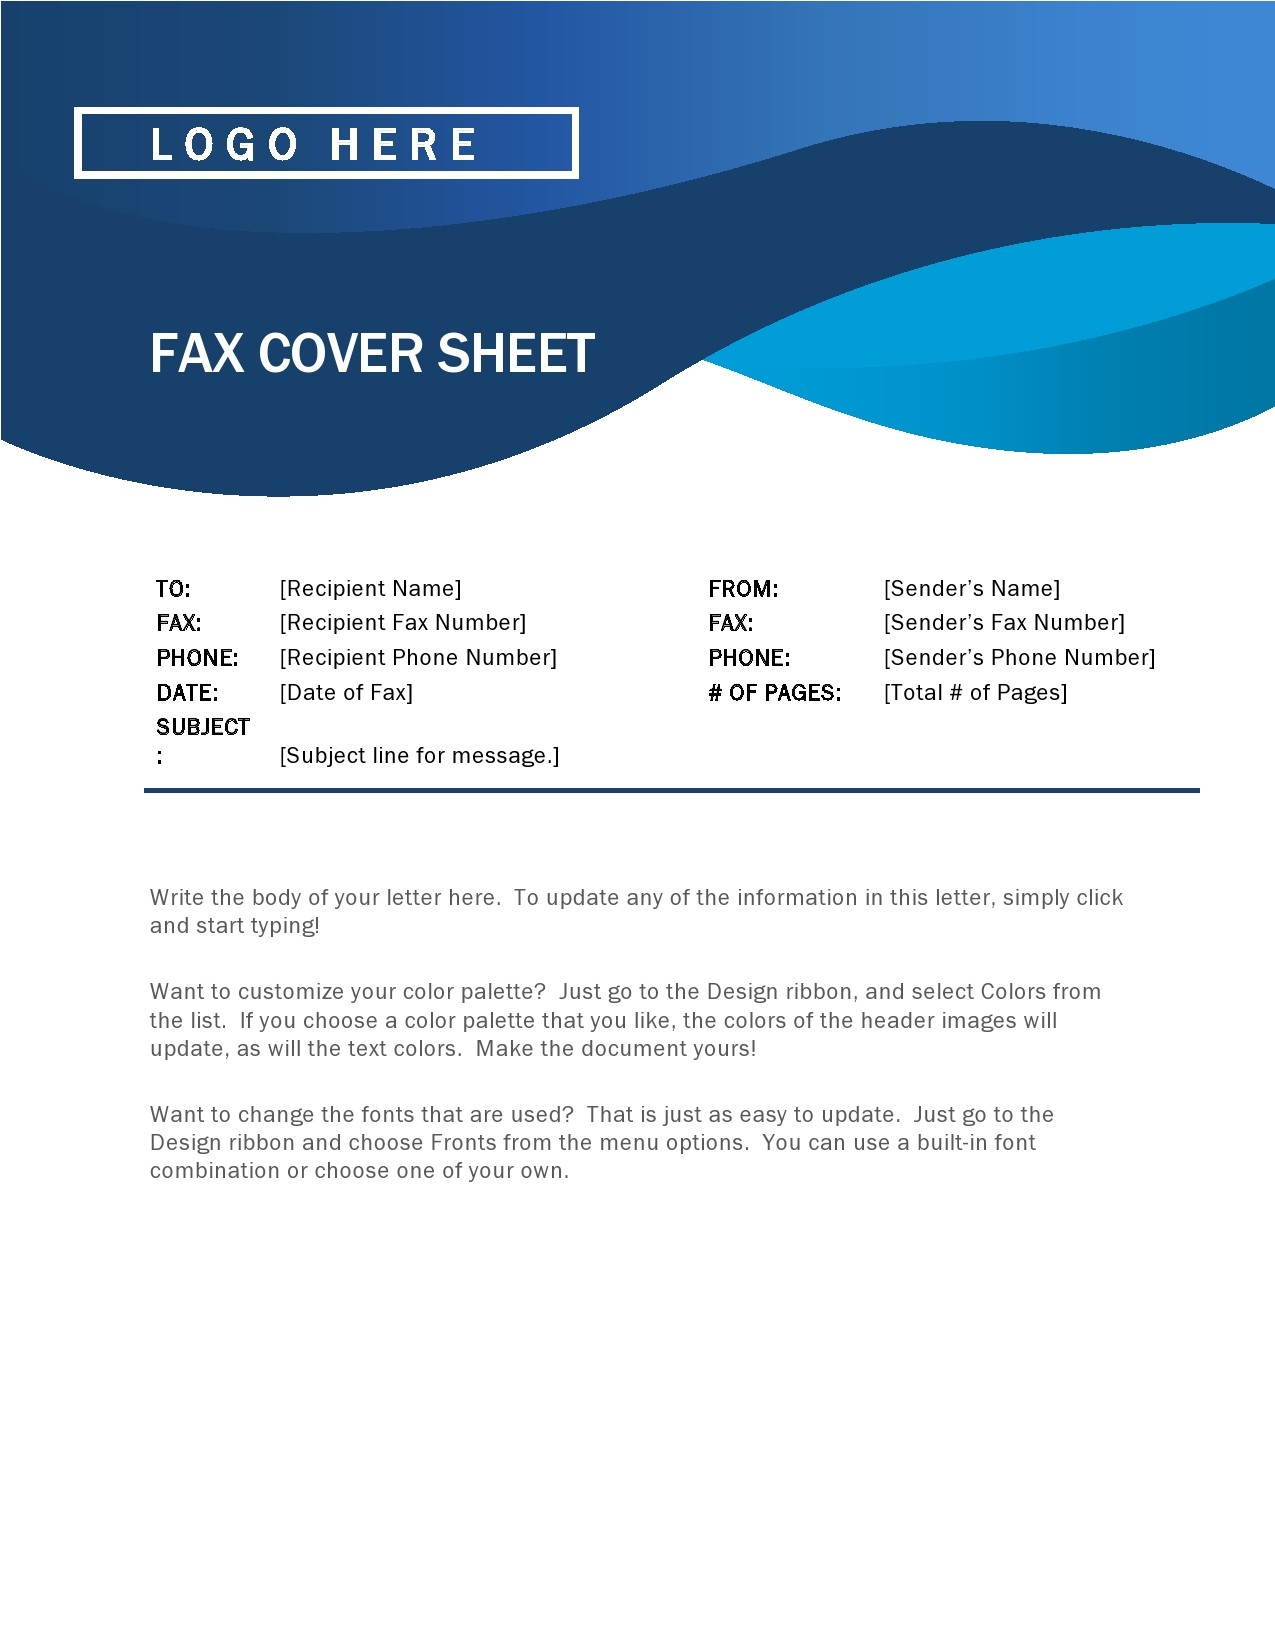 free fax cover sheet 39